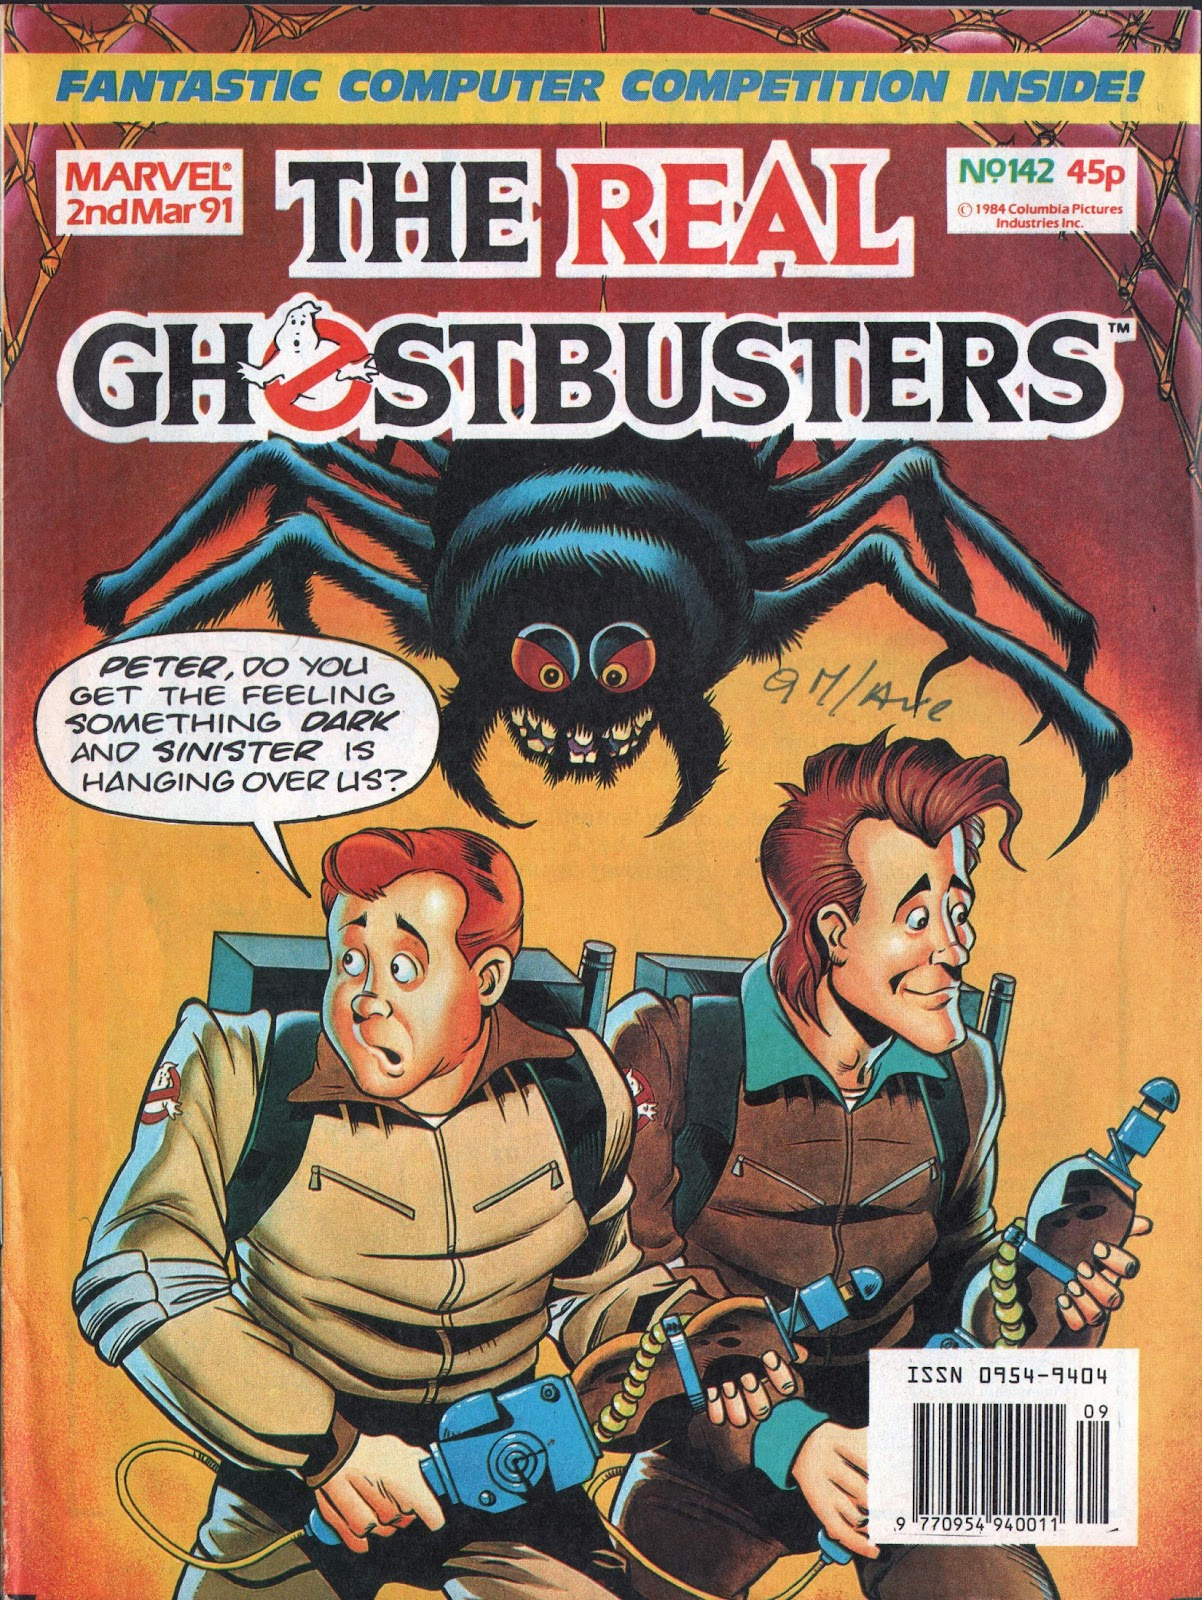 The Real Ghostbusters 142 Page 1